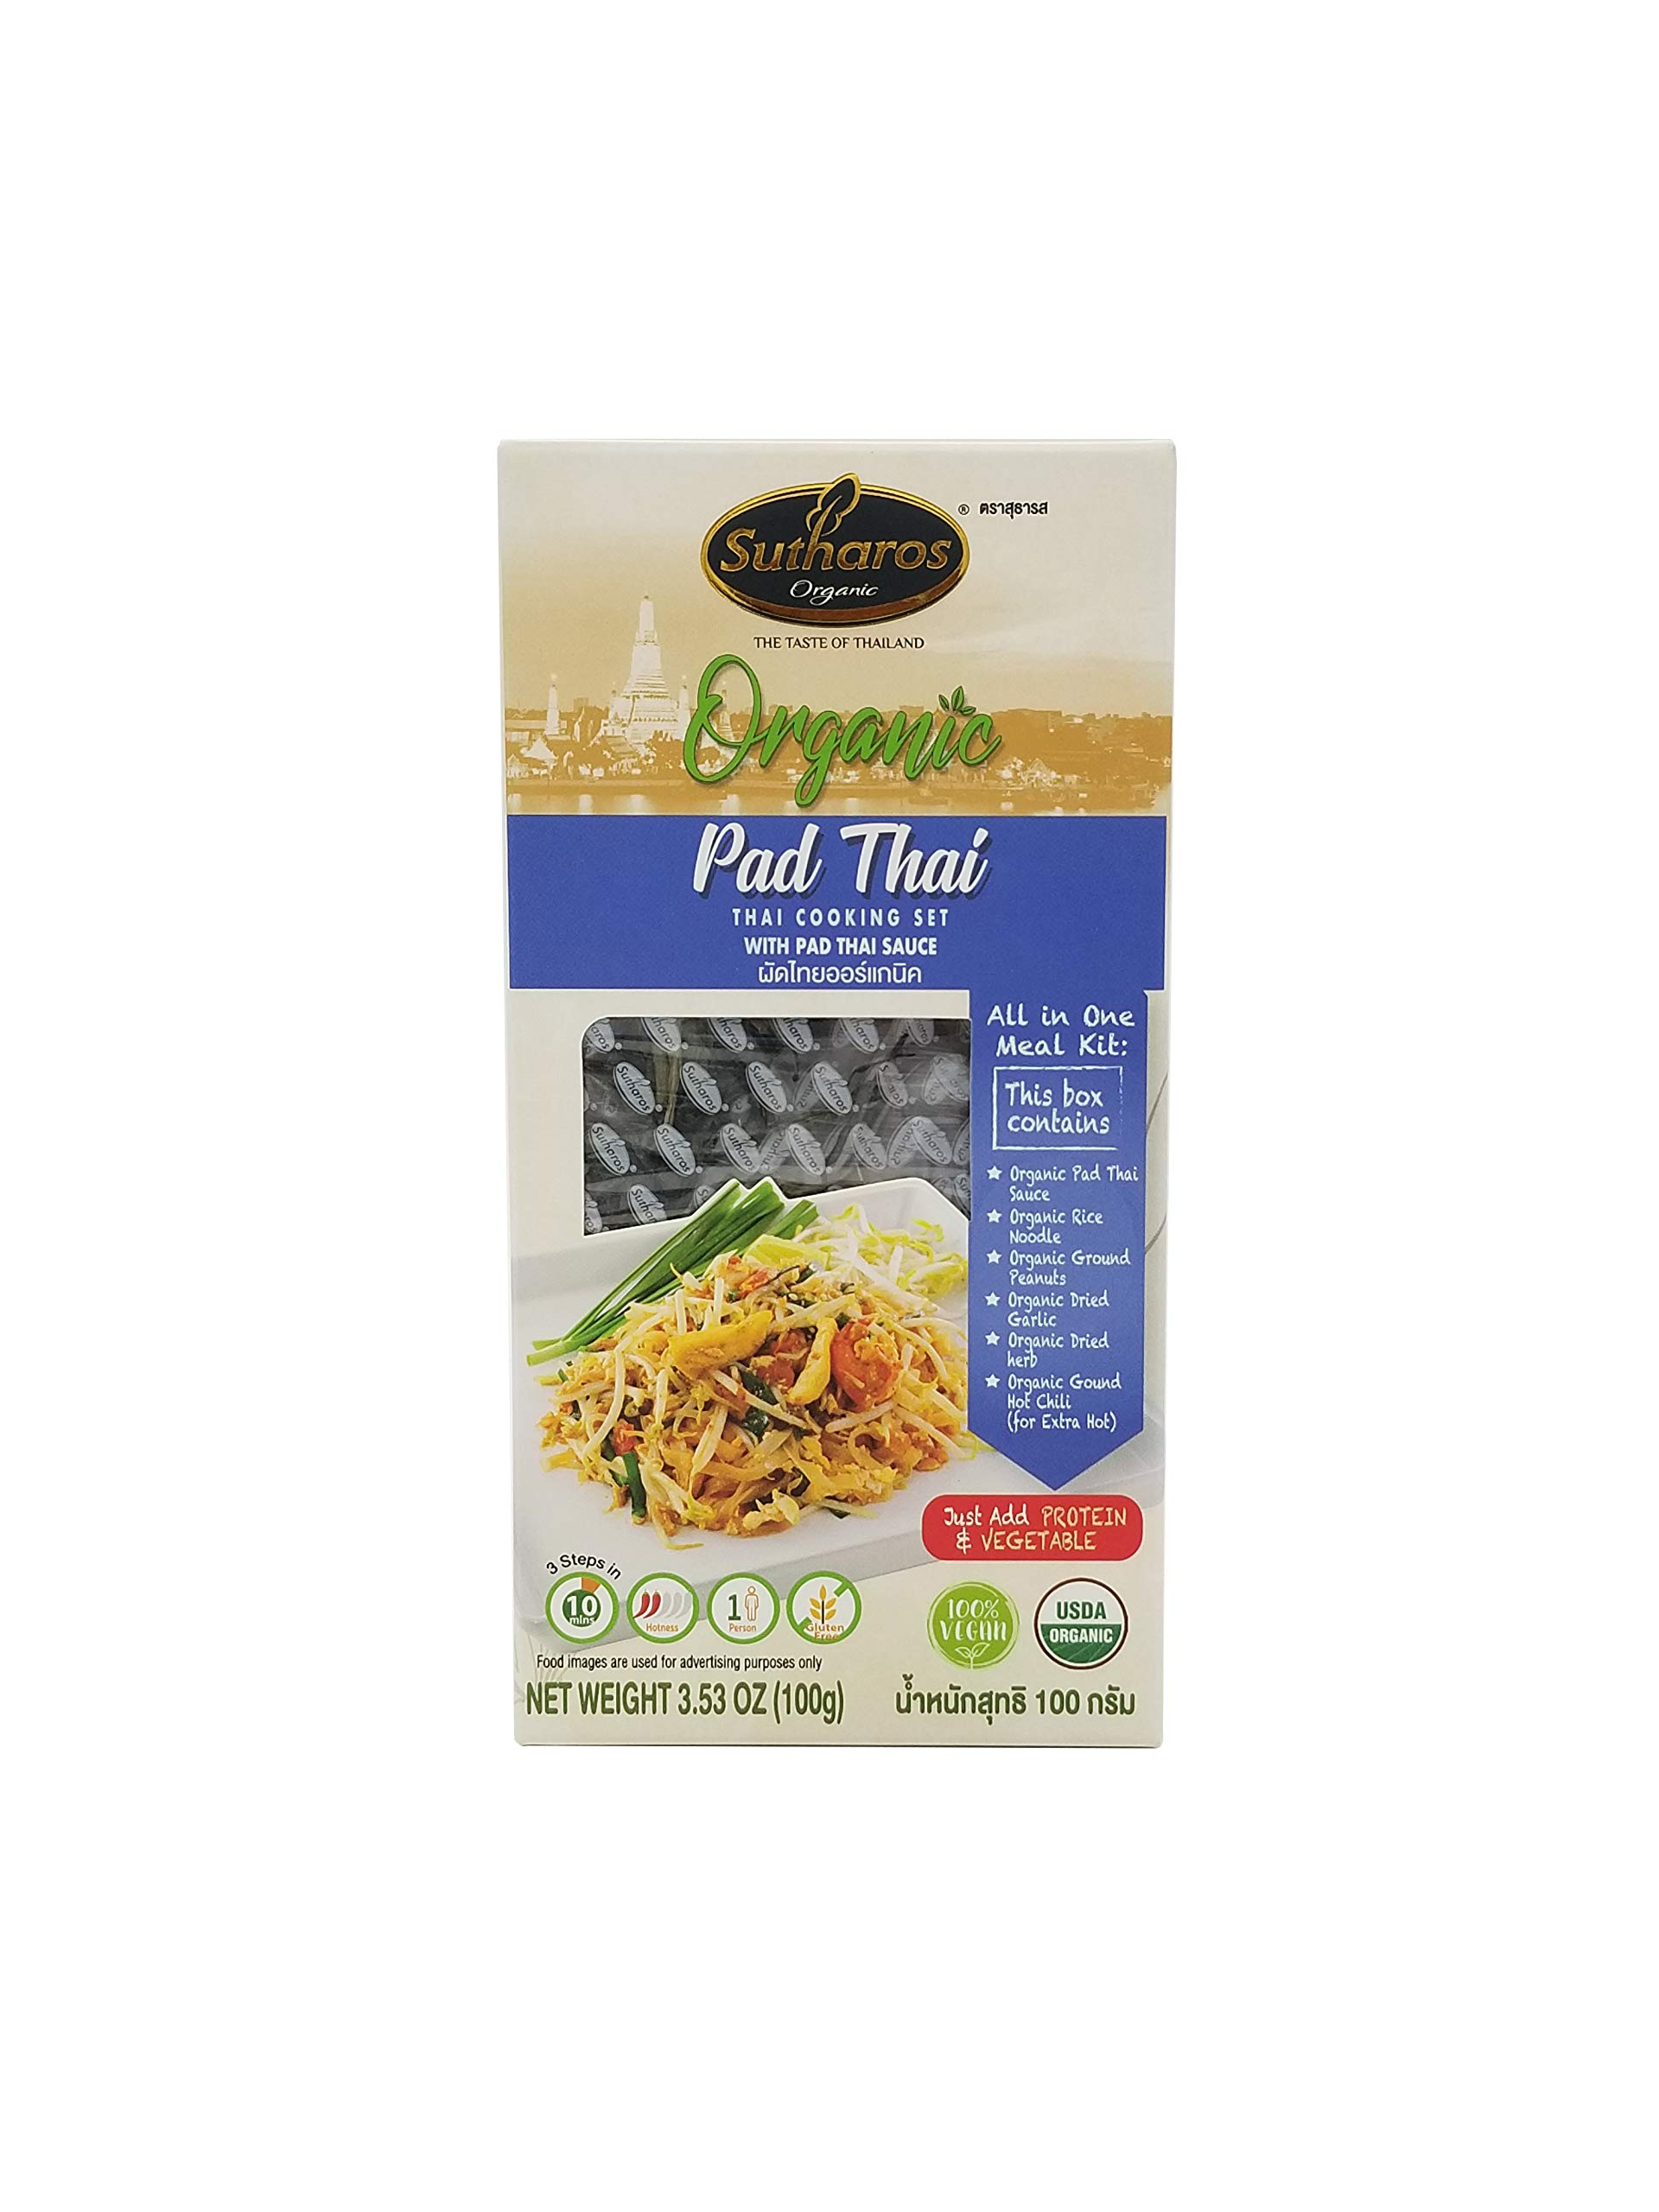 Sutharos Organic Pad Thai Meal Kit (12 Pack), 100% Vegan, Gluten Free, Comes With Rice Noodles , Pad Thai Sauce, Herbs, and Spices